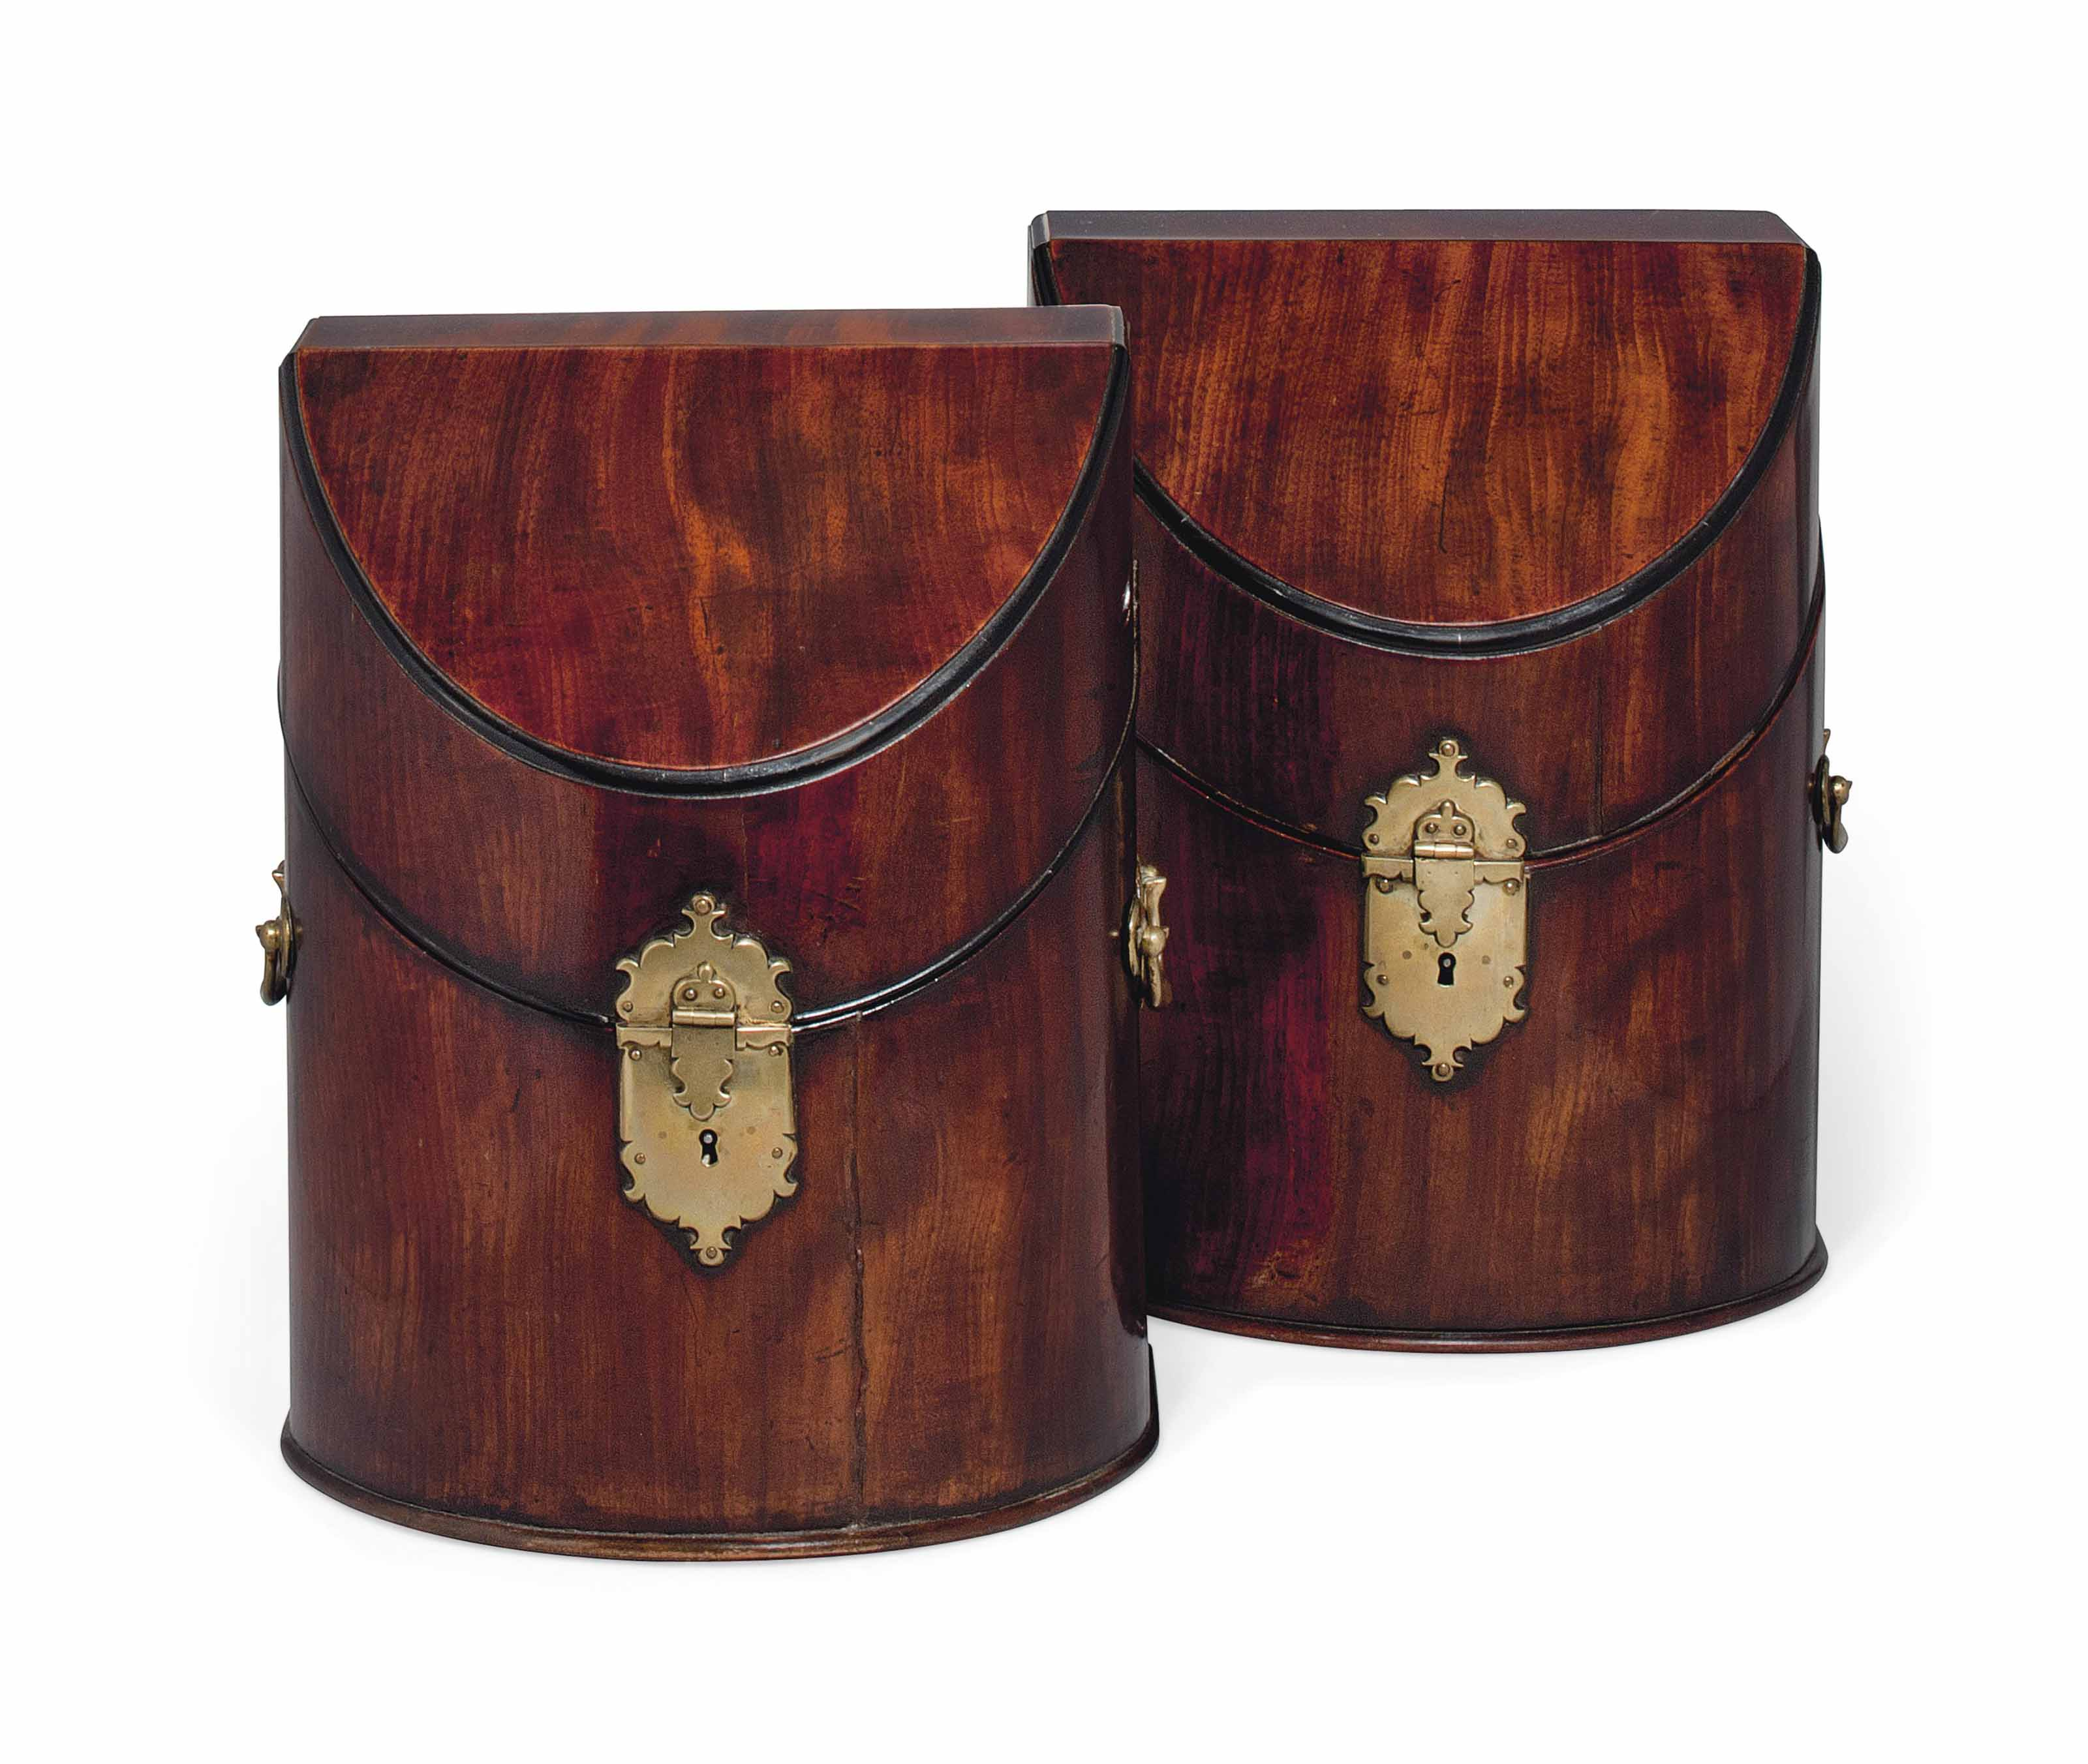 A PAIR OF GEORGE II MAHOGANY KNIFE BOXES